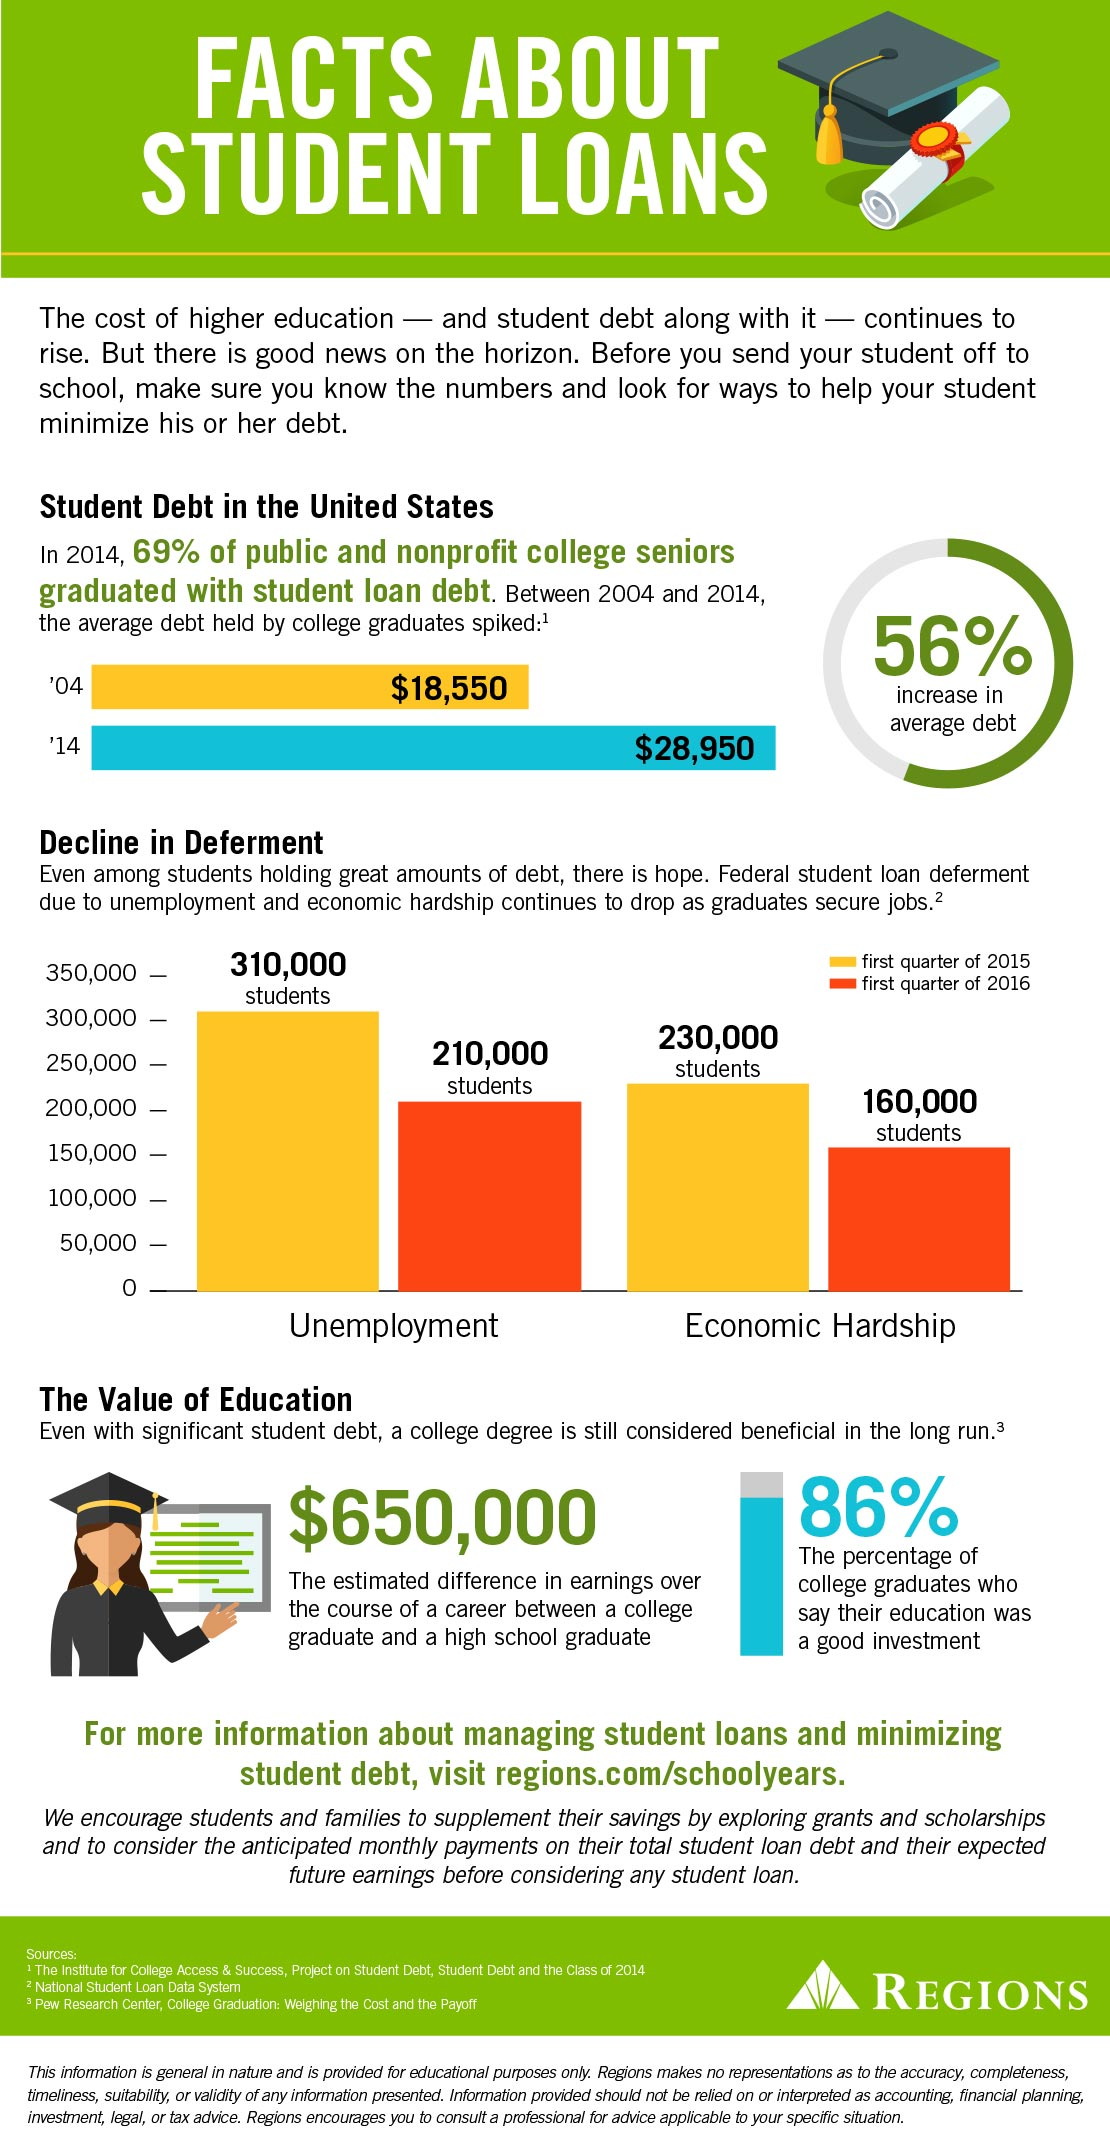 facts about student loans